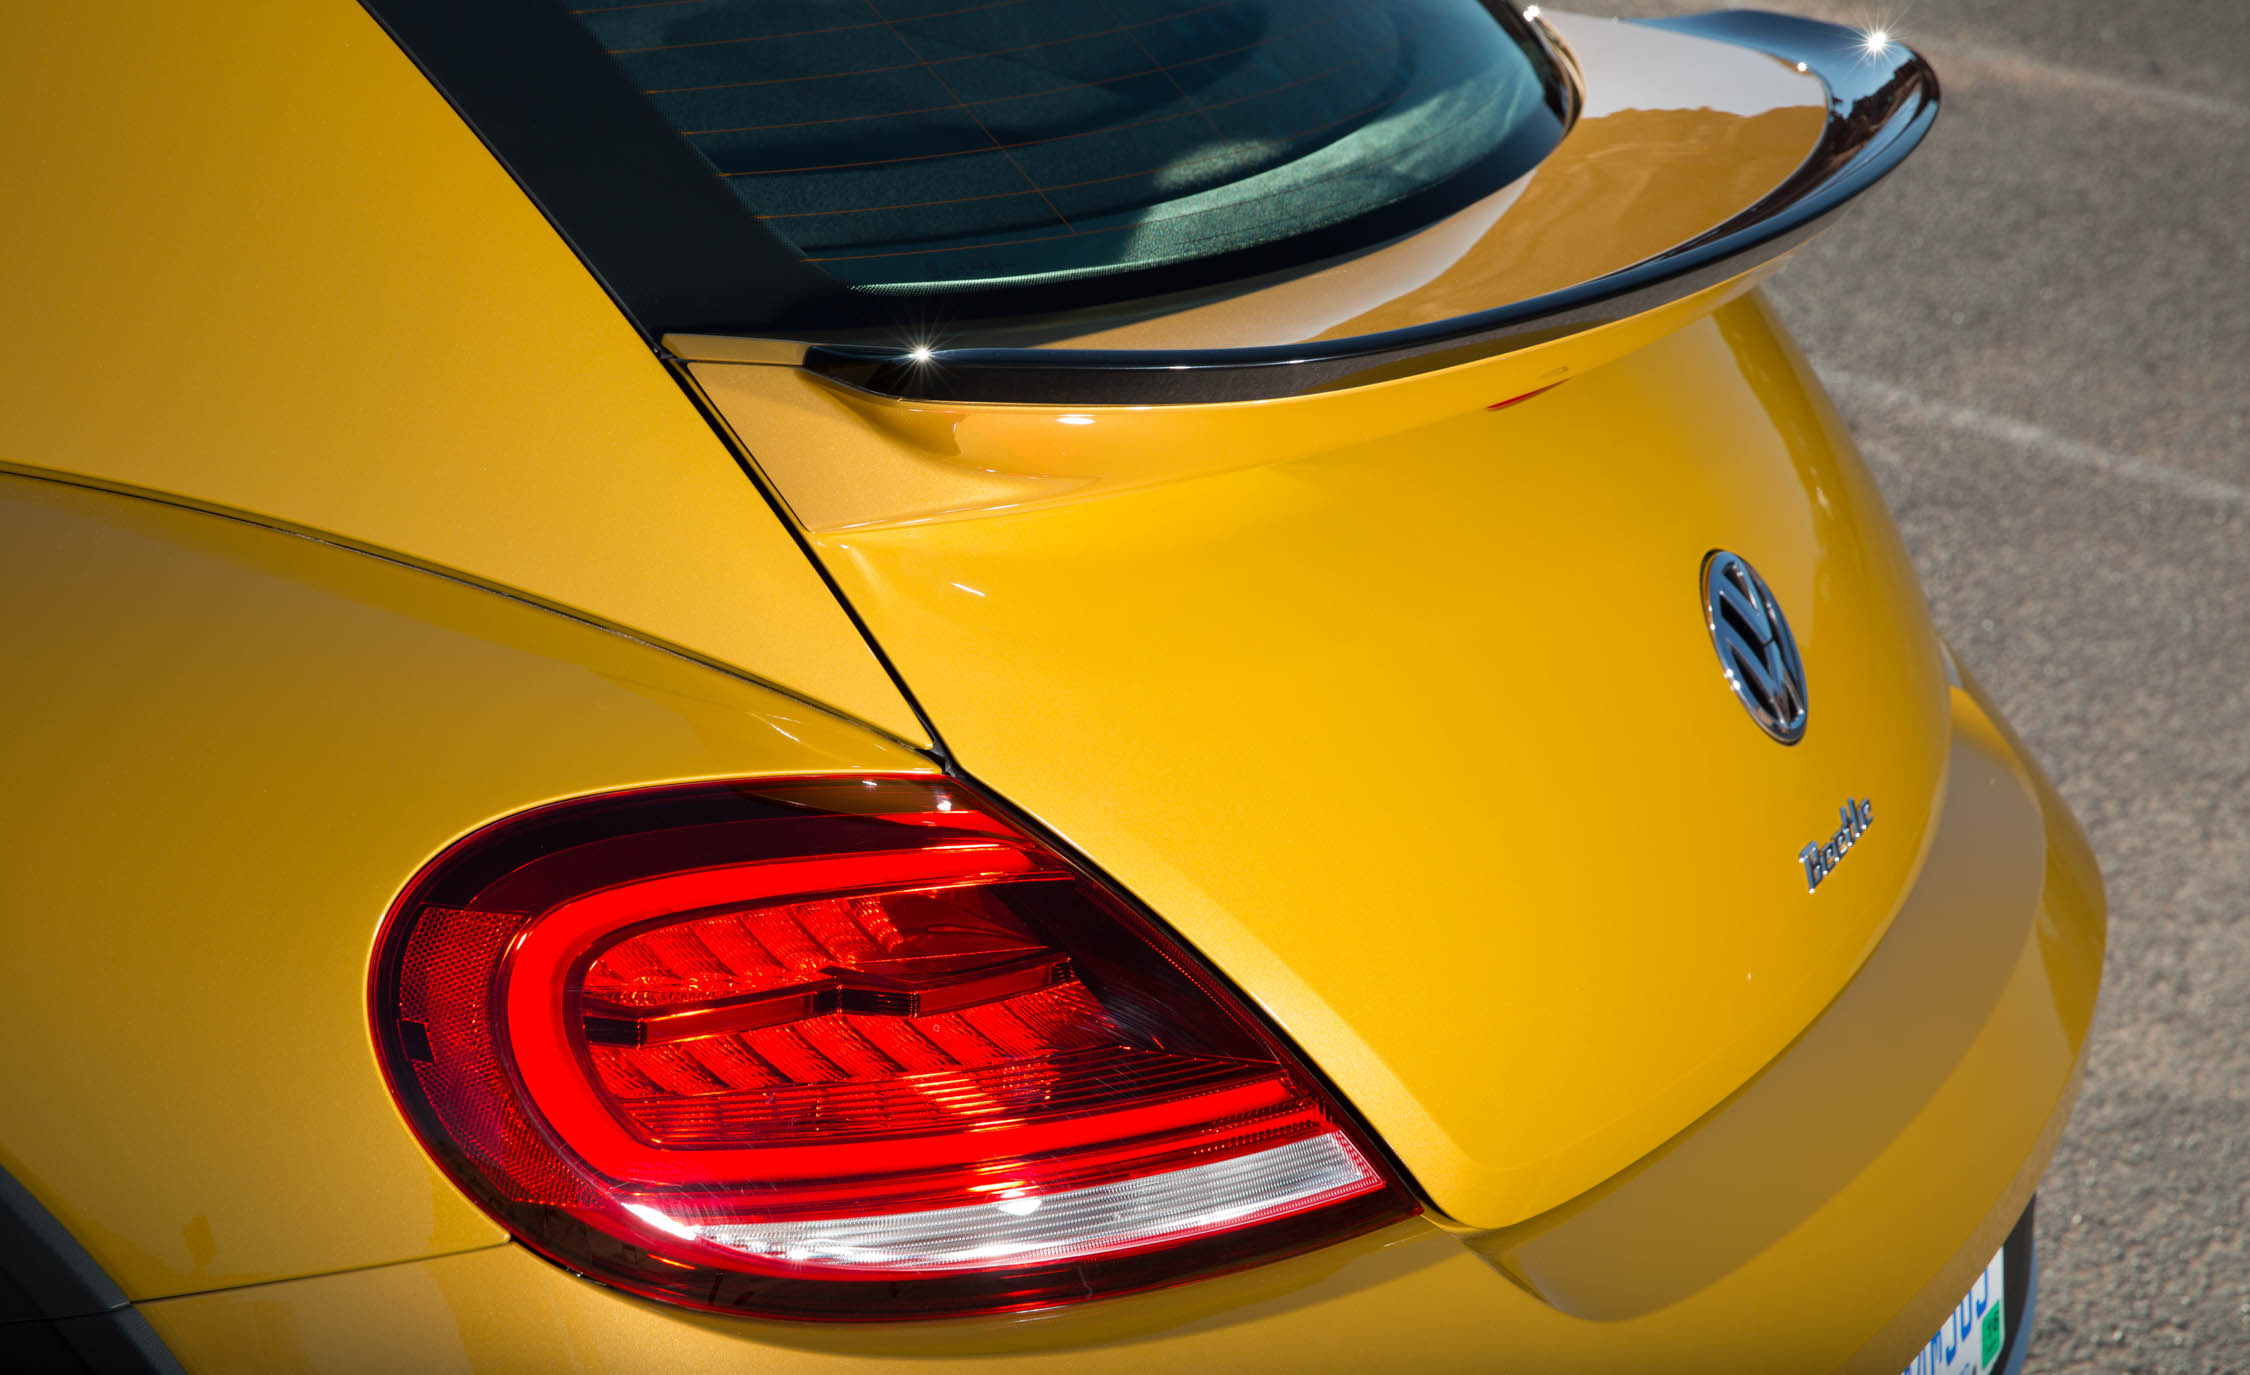 2016 Volkswagen Beetle Dune Exterior Taillight (Photo 21 of 32)